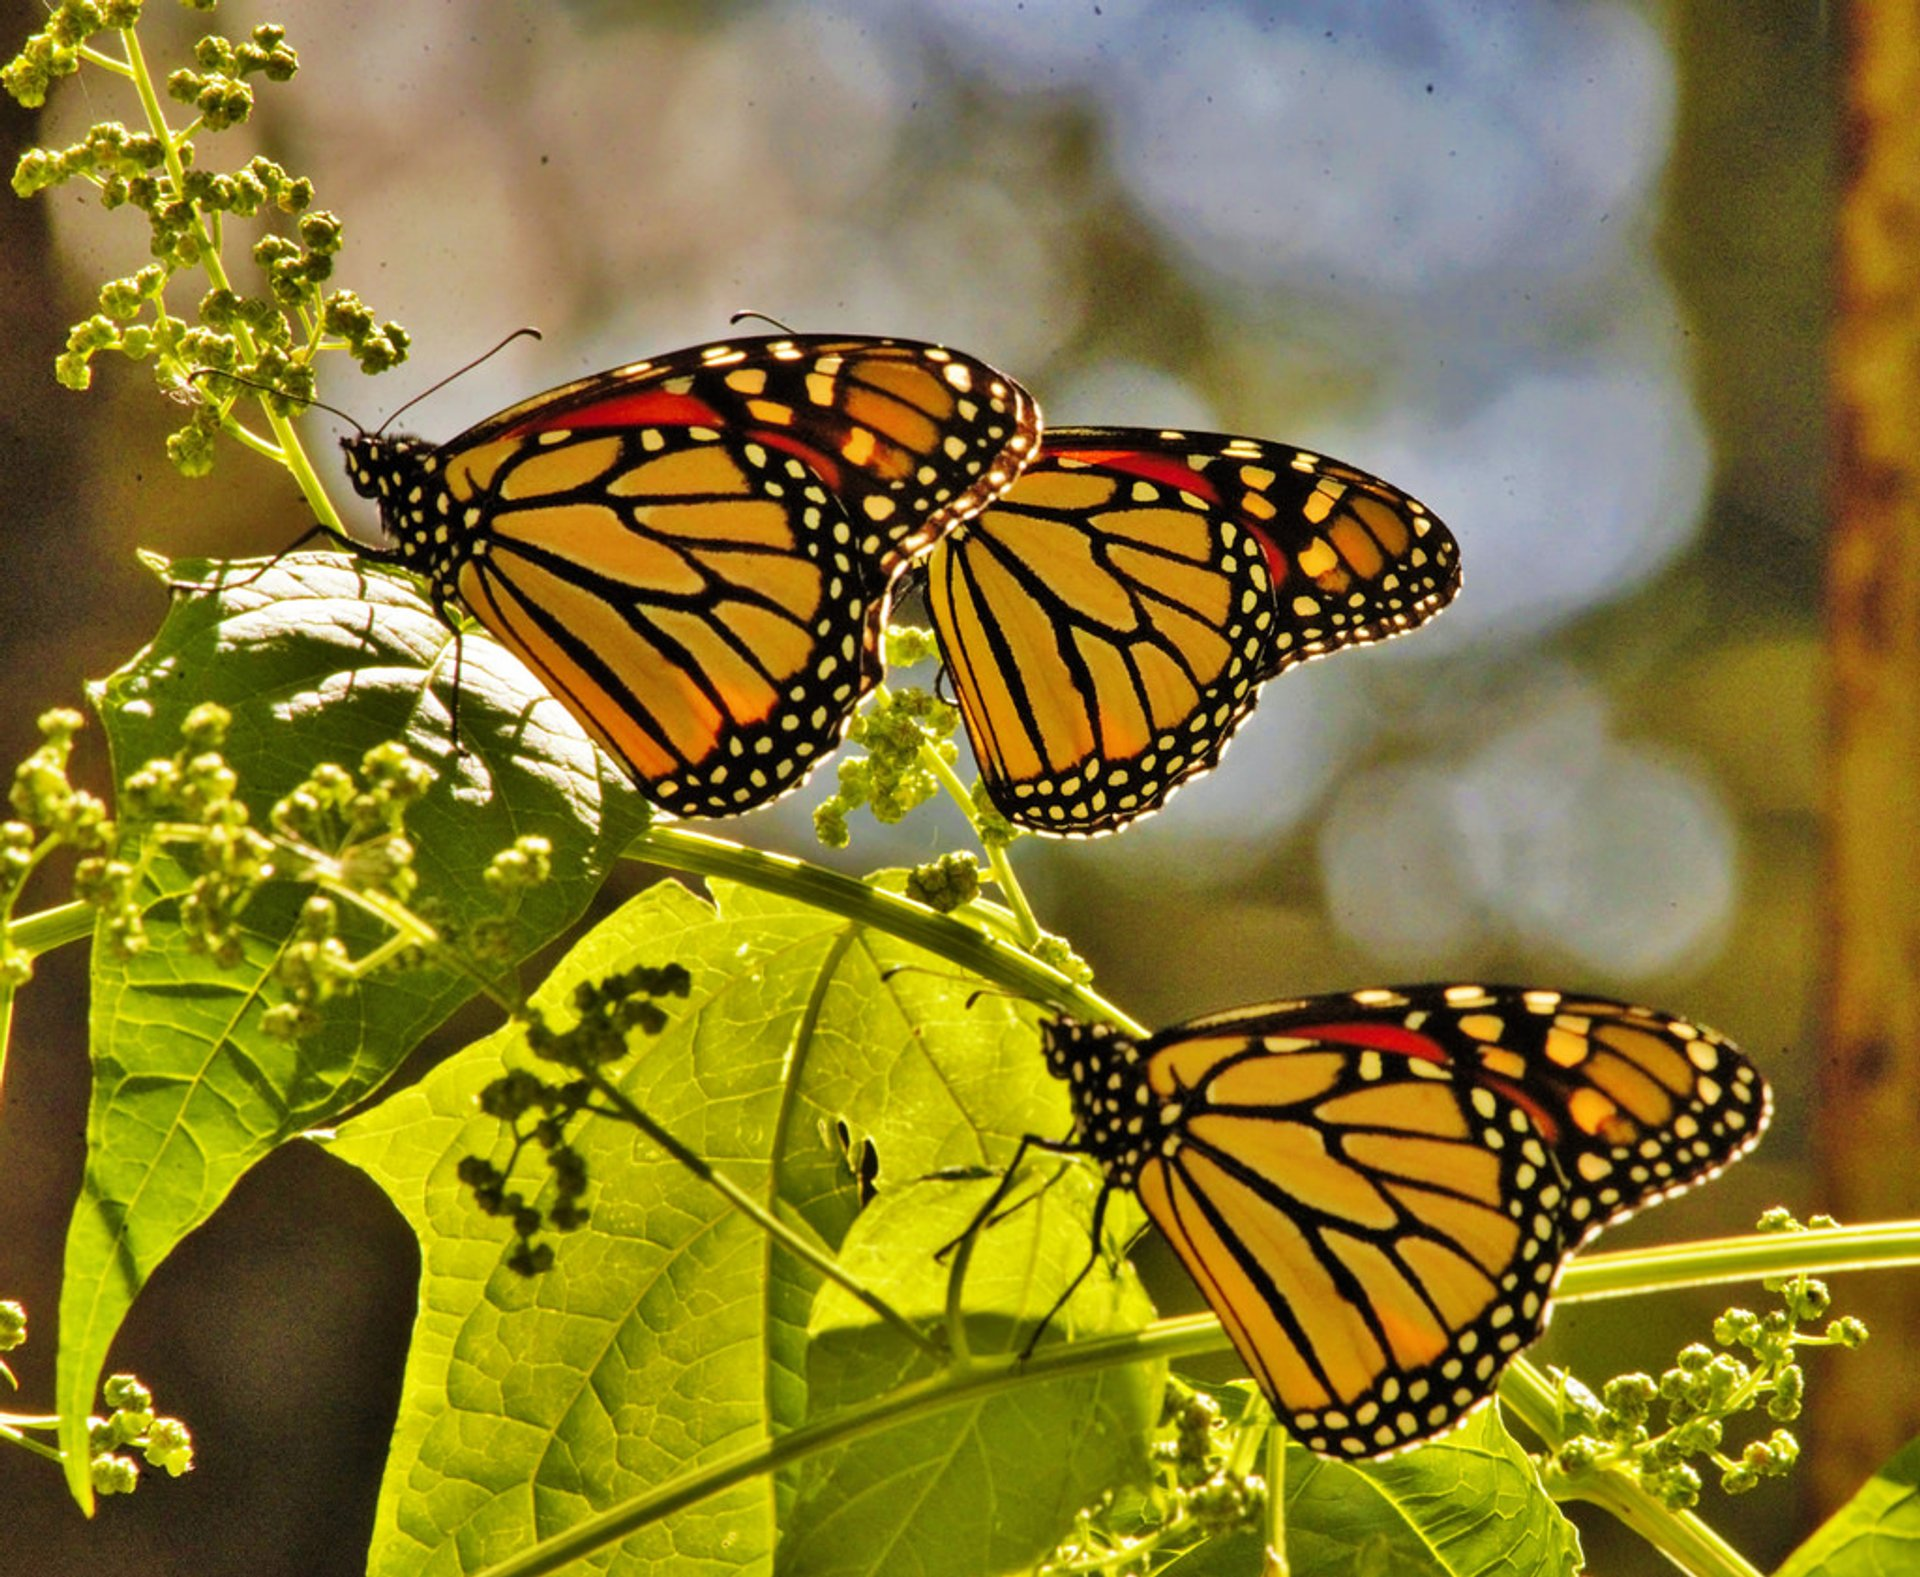 Monarch Butterfly Migration in Cuba 2020 - Best Time